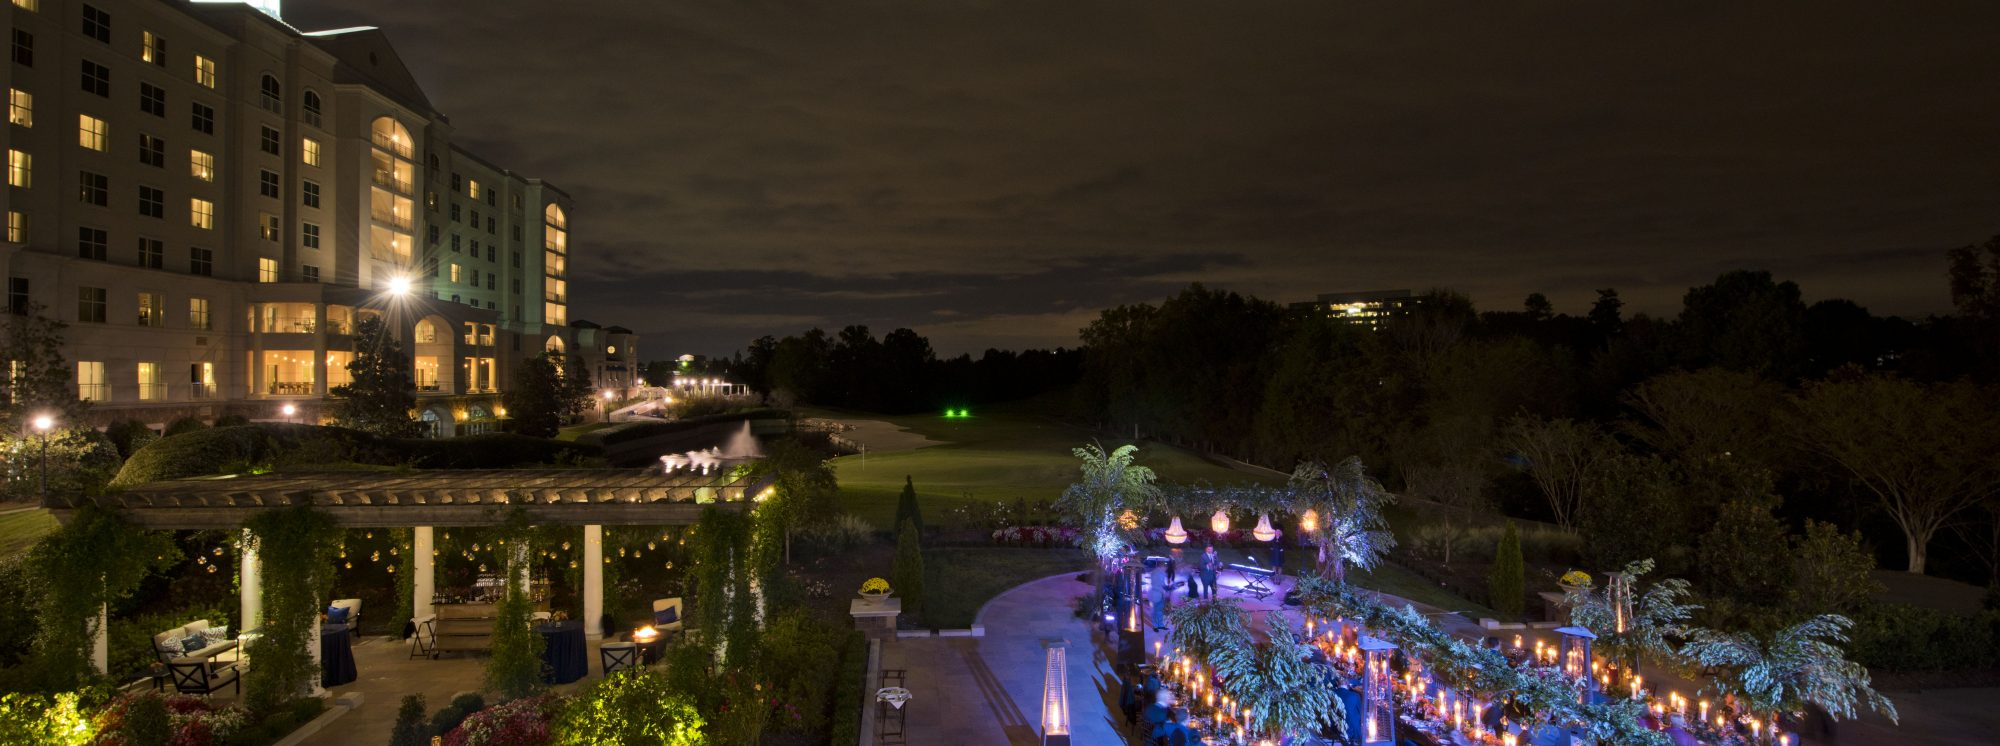 Meetings and Events at The Ballantyne, A Luxury Collection Hotel, Charlotte, North Carolina